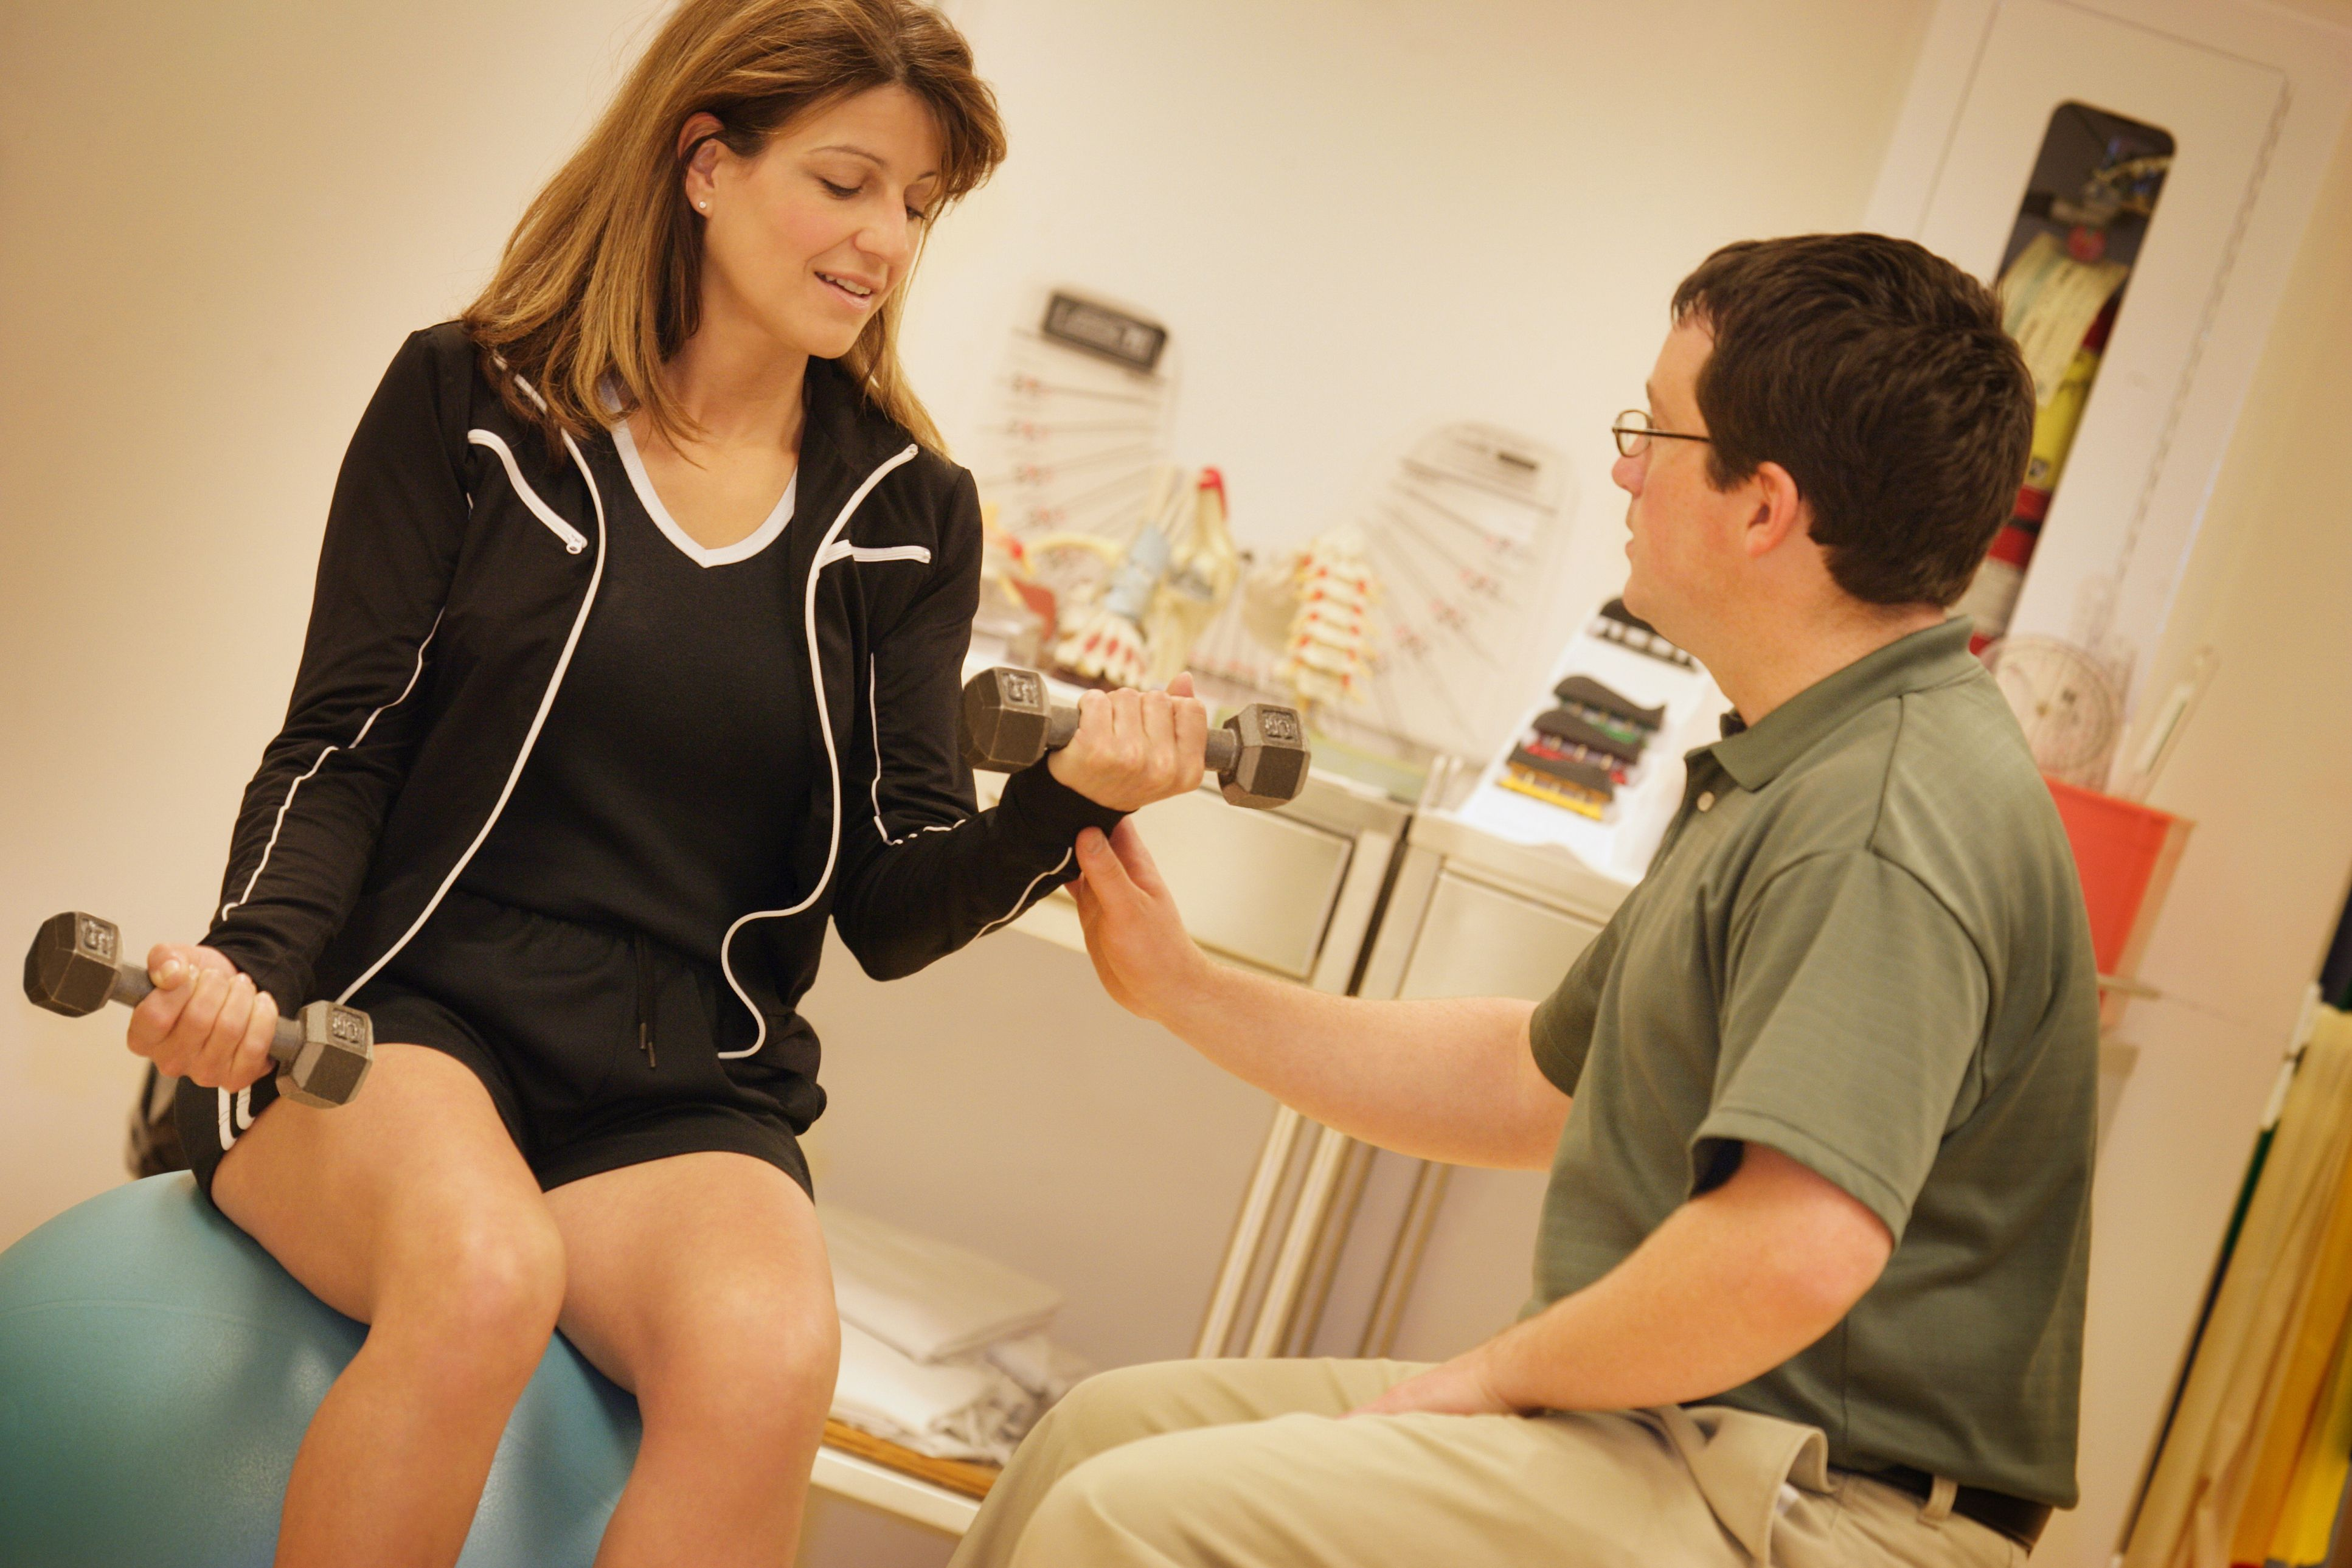 Comparing 3 Occupational Therapy Careers